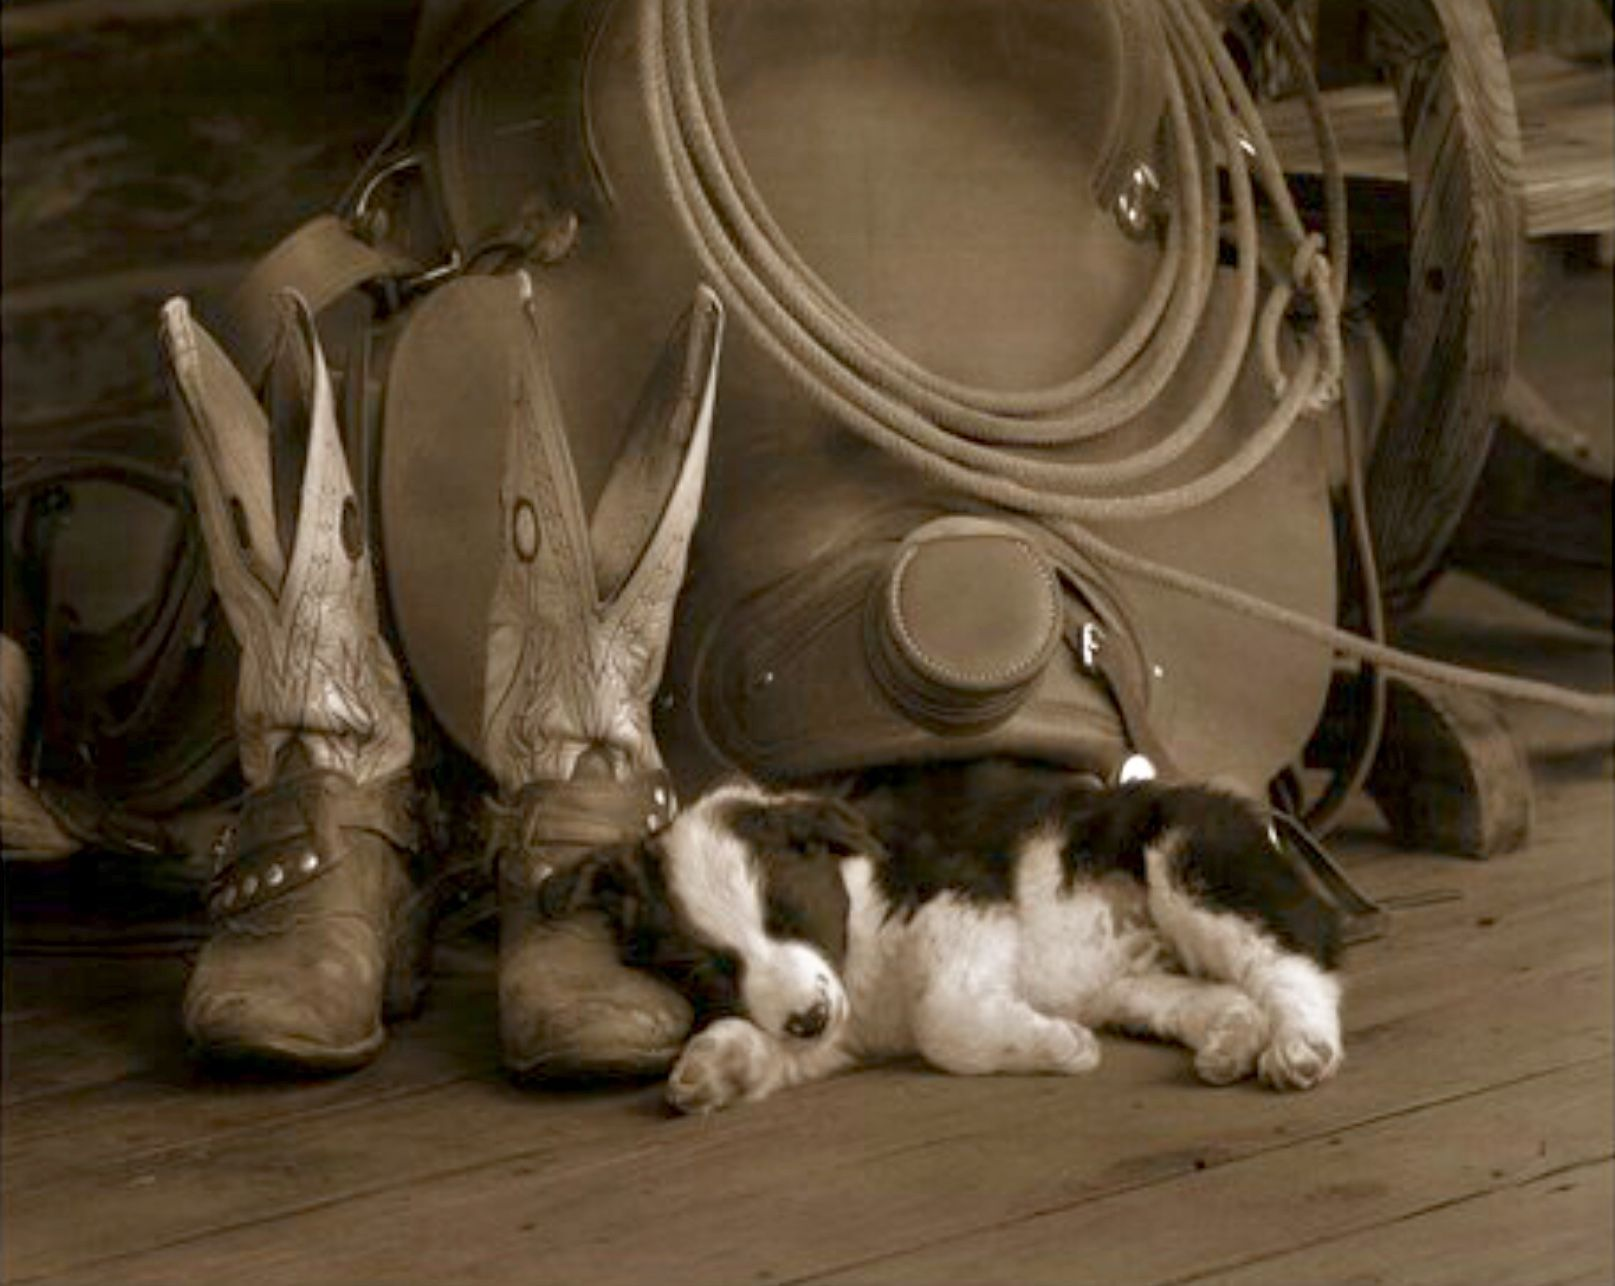 Cowboy S Cute Border Collie Puppy Sleeping By His Master S Boots